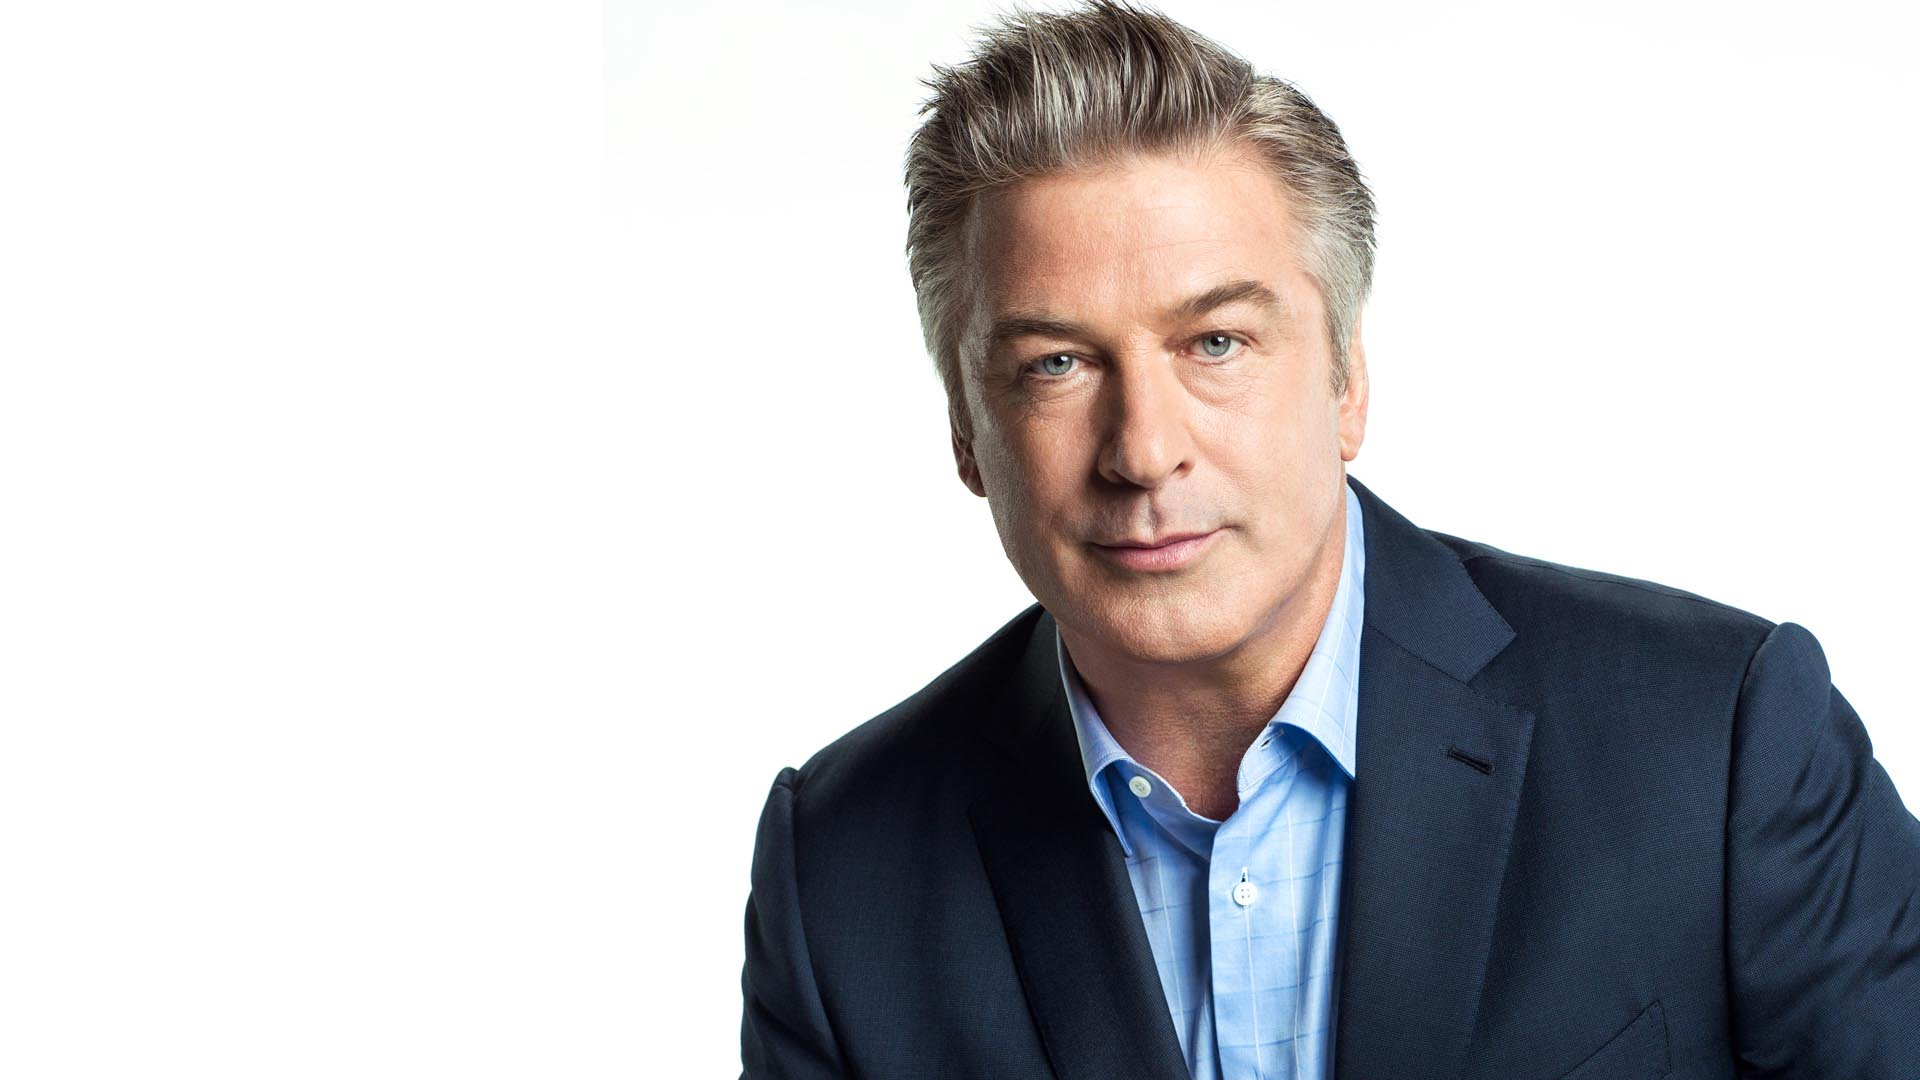 Alec Baldwin net worth